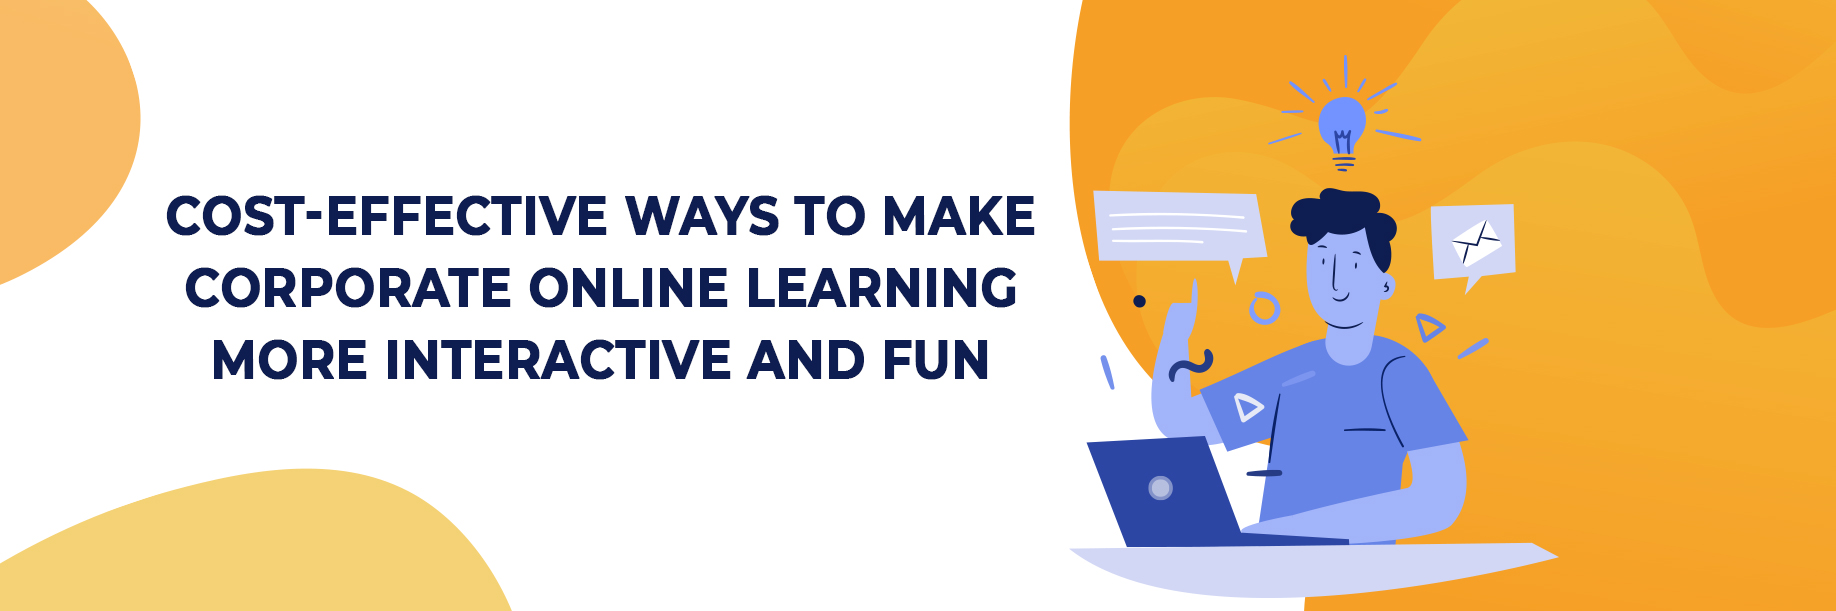 Cost-Effective Ways to Make Corporate Online Learning More Interactive and Fun